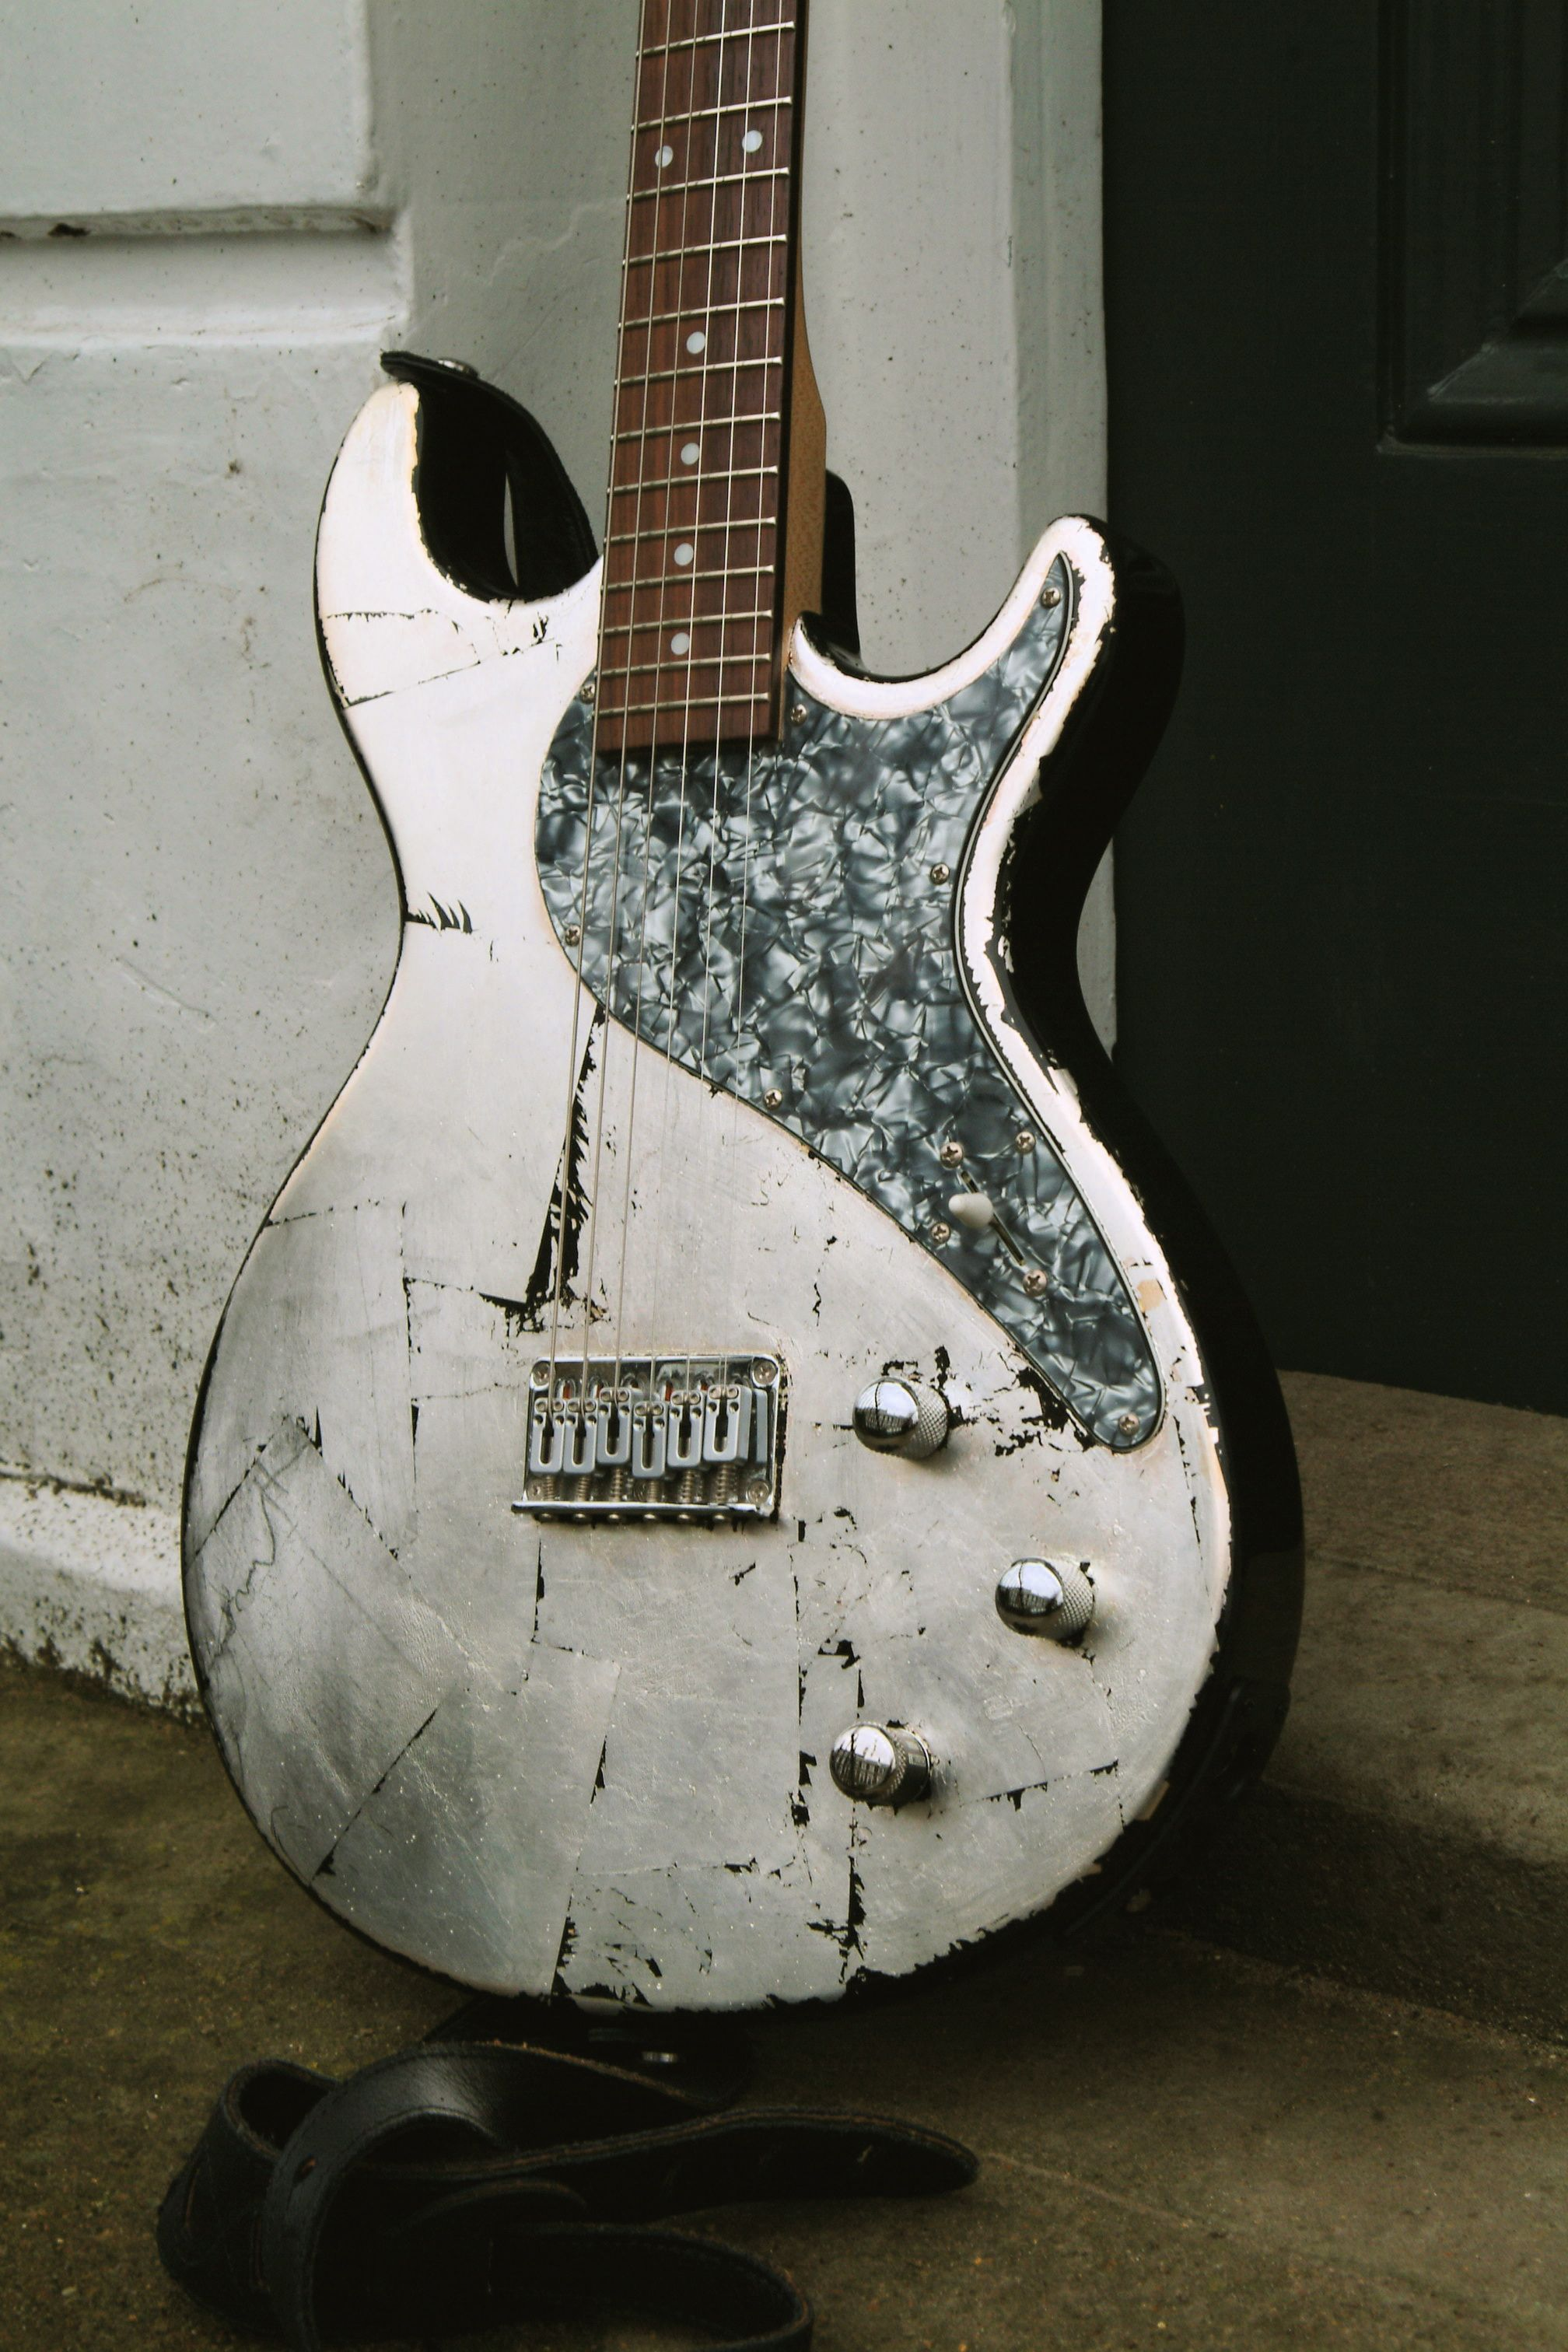 Gorgeous Guitar Gilded In Silver Leaf Creating A Distressed Very Wiring 101 Basic Electronics Mylespaulcom Rock N Roll Look